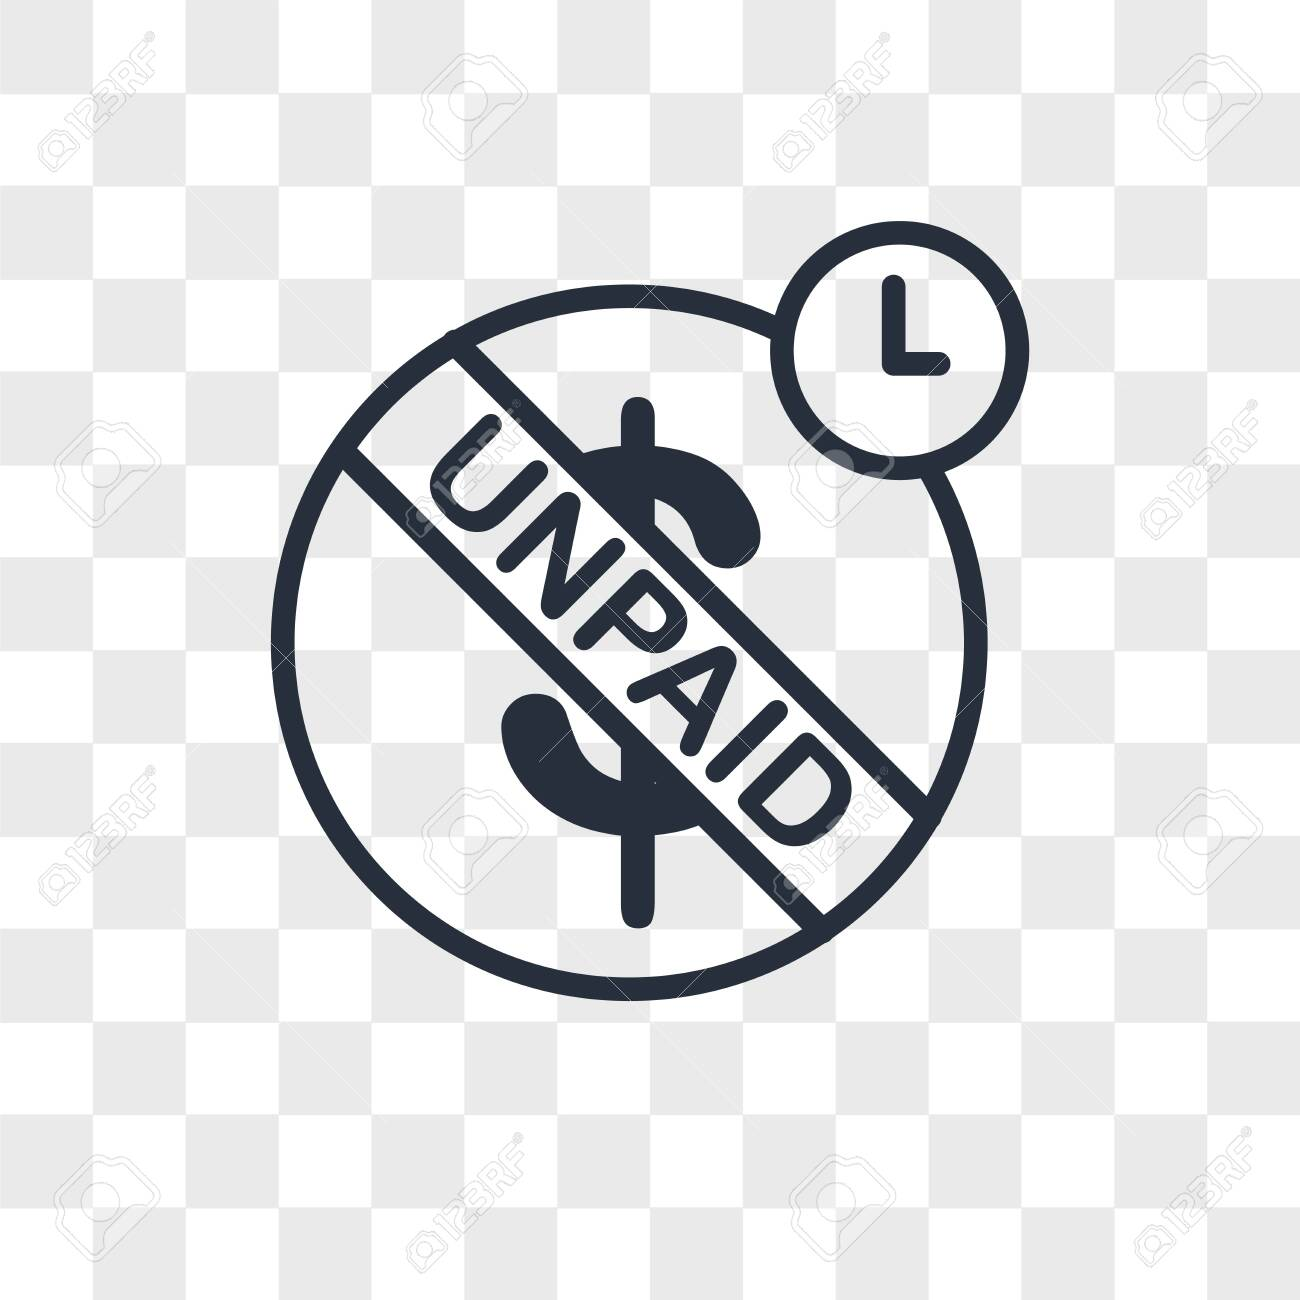 unpaid vector icon isolated on transparent background, unpaid logo concept - 150640955